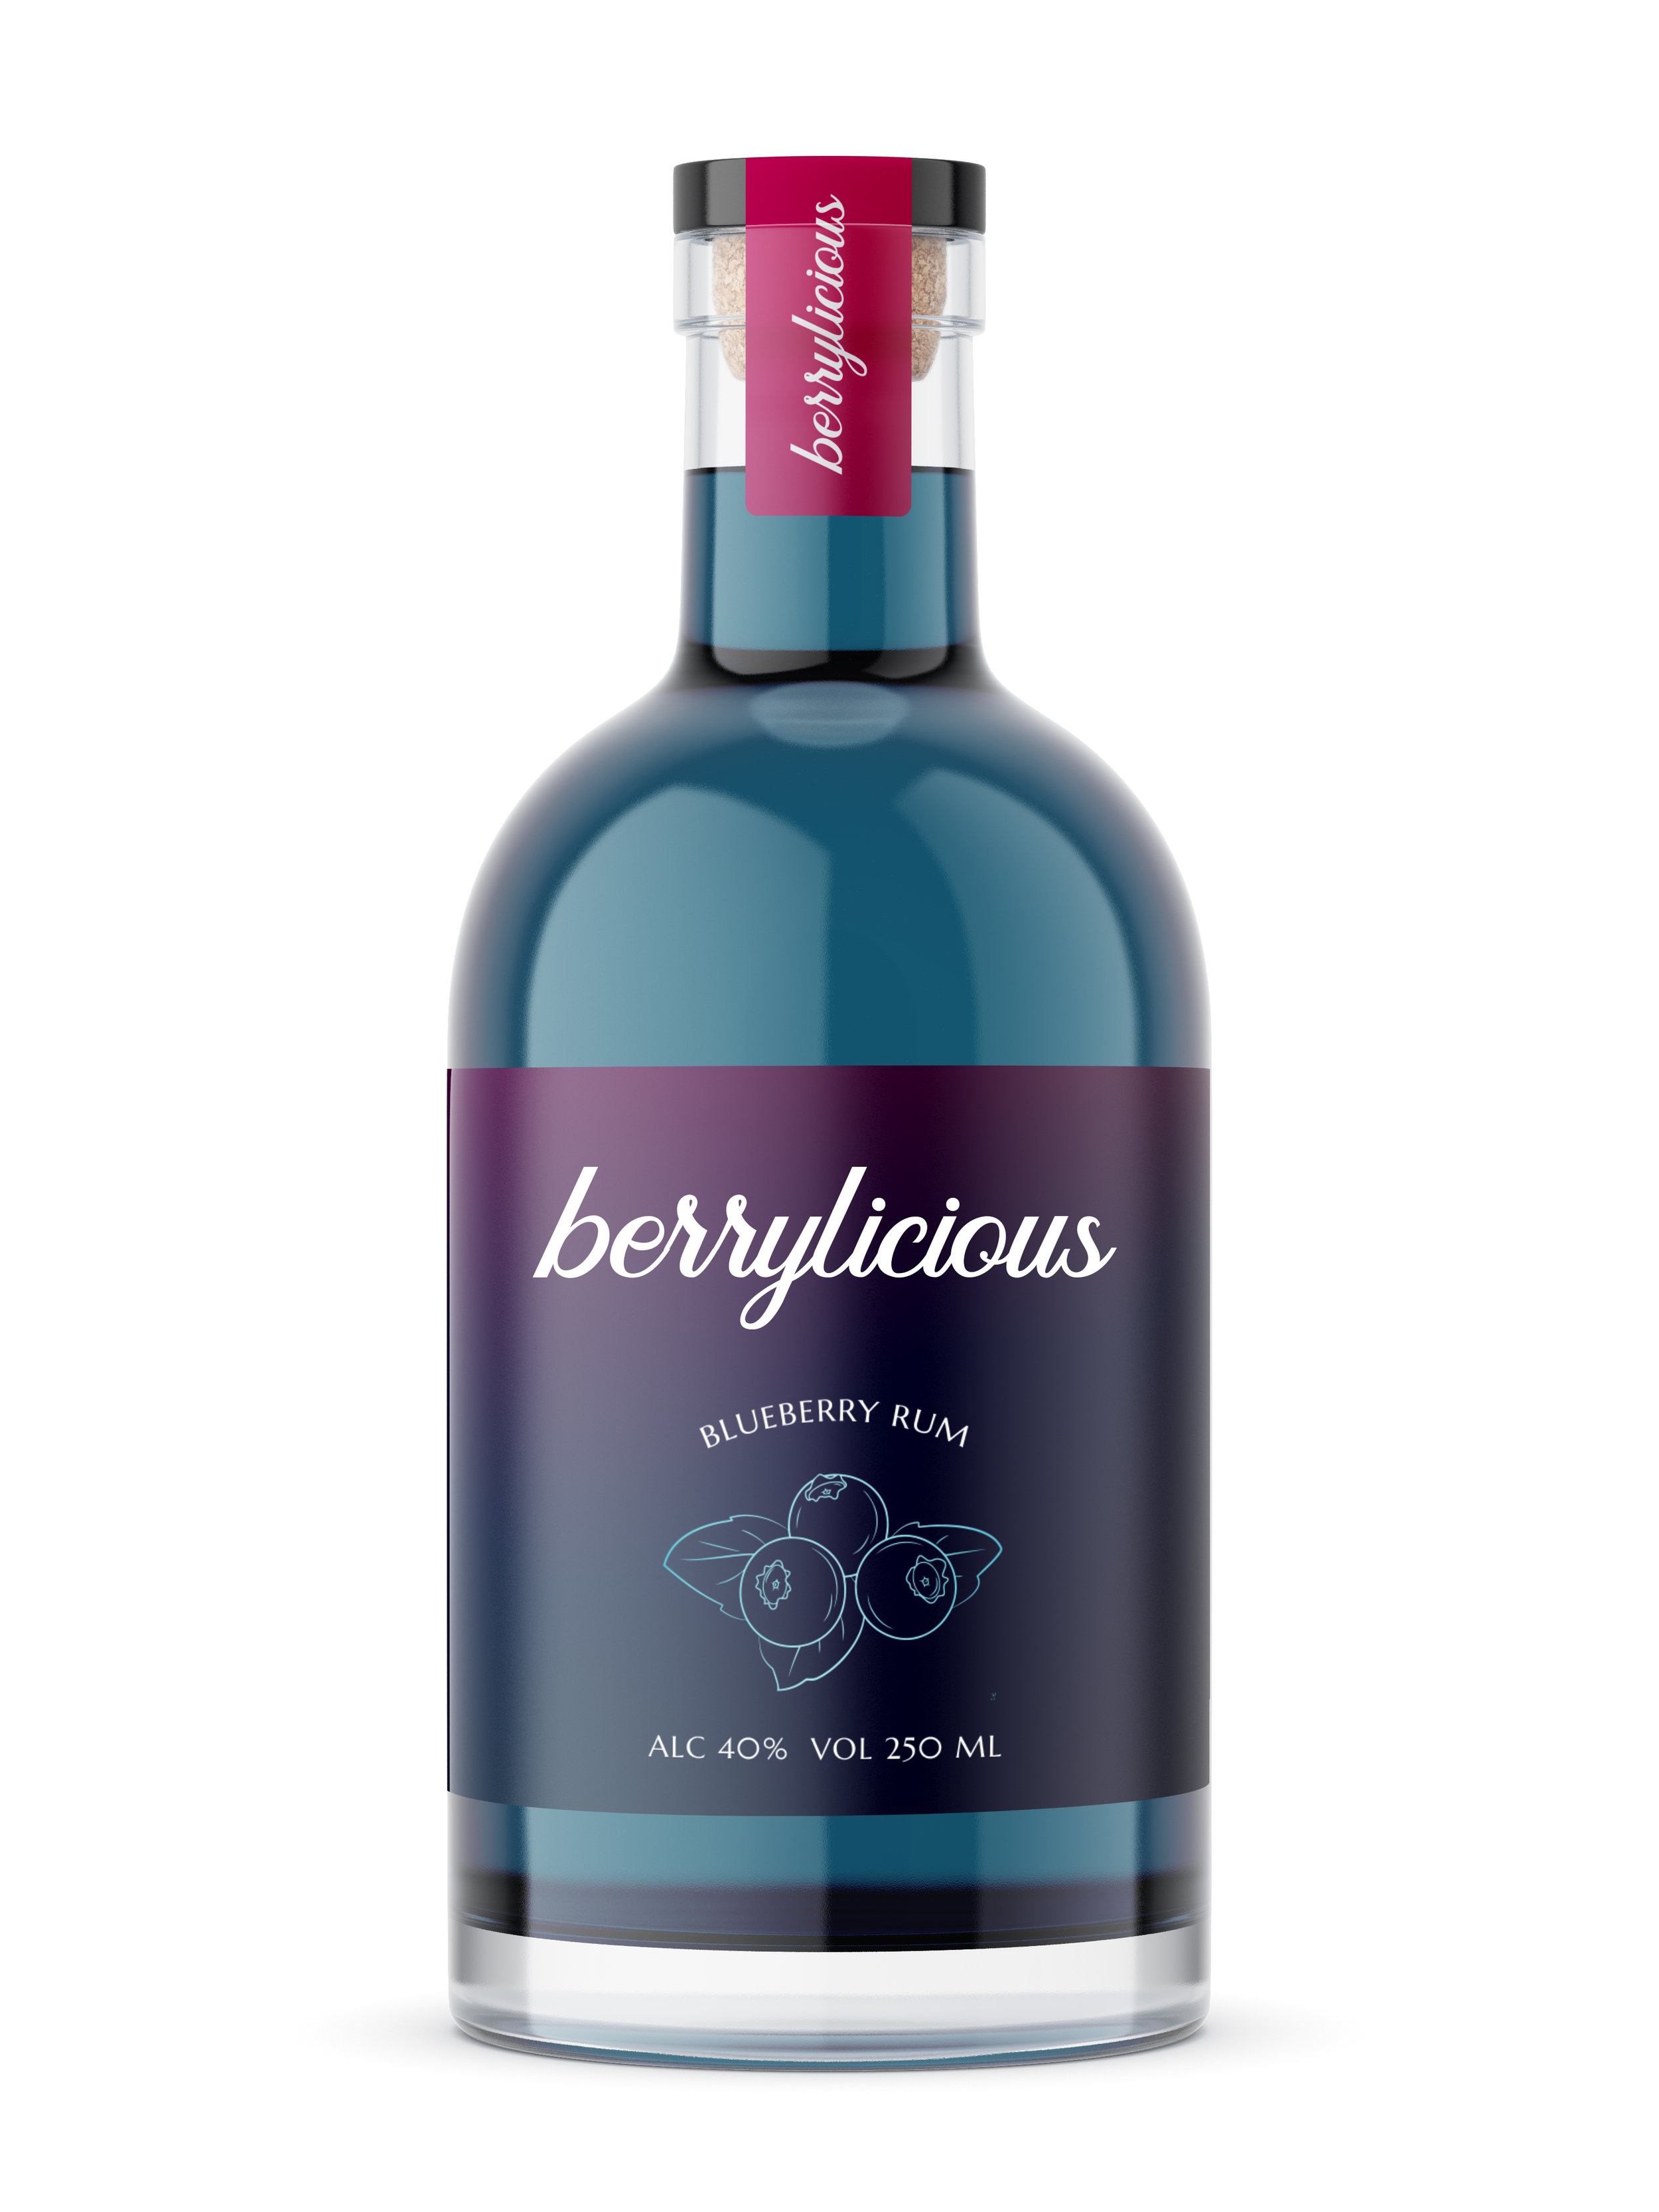 Berrylicious Blueberry Rum